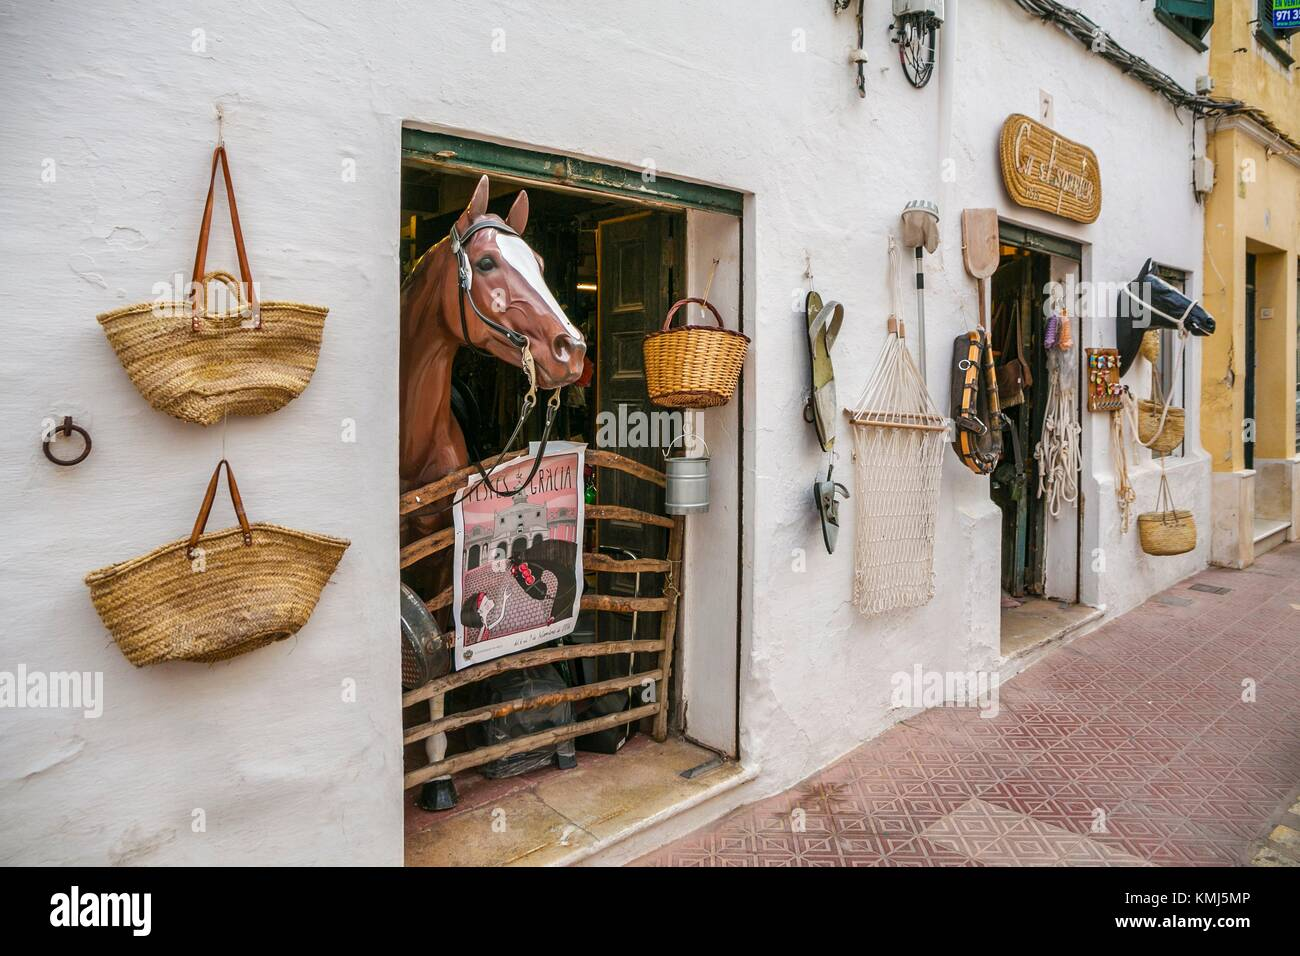 Ca s´Esparte Store. Mahón City. Maó Municipality. Menorca Island. Balearic Islands. Spain - Stock Image